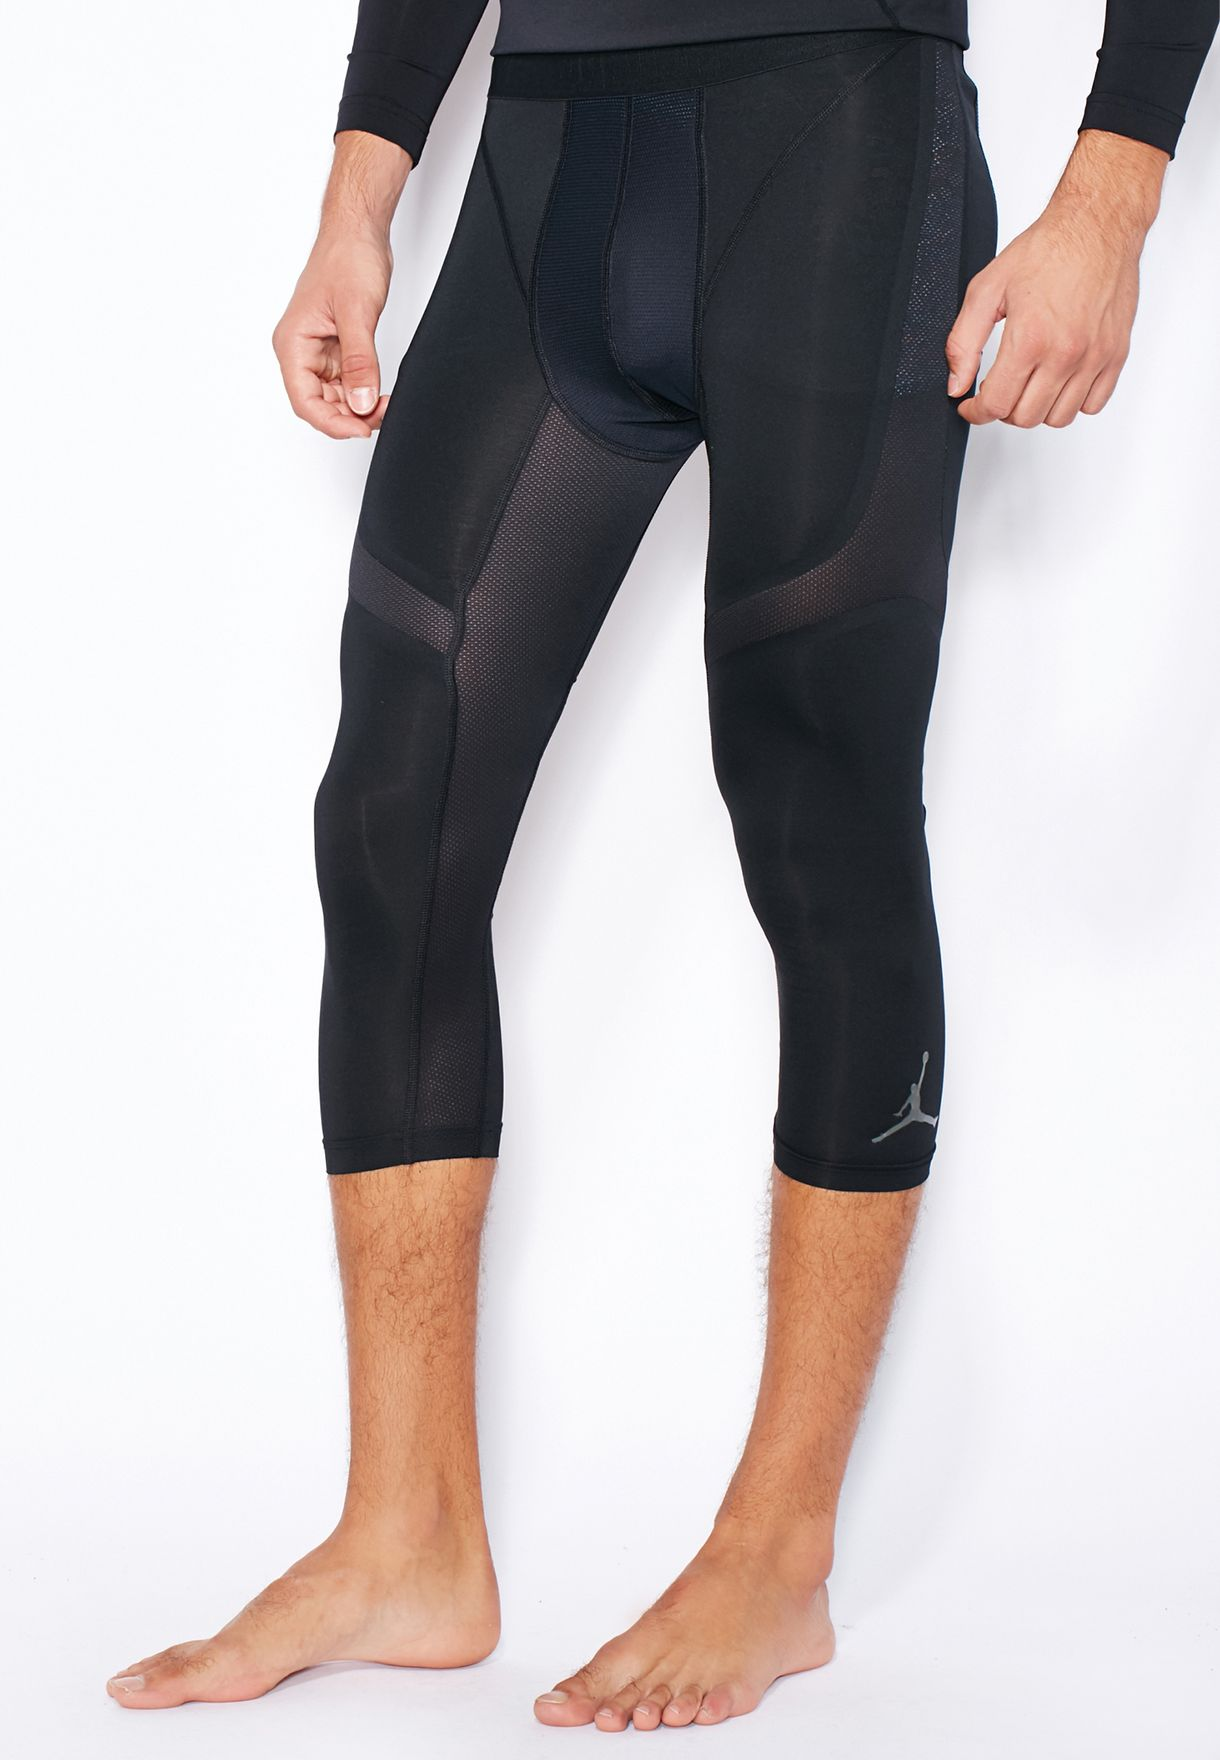 7ae3a9096b4 Shop Nike black Jordan Stay Cool Compression 3/4 Tights 687837-014 ...